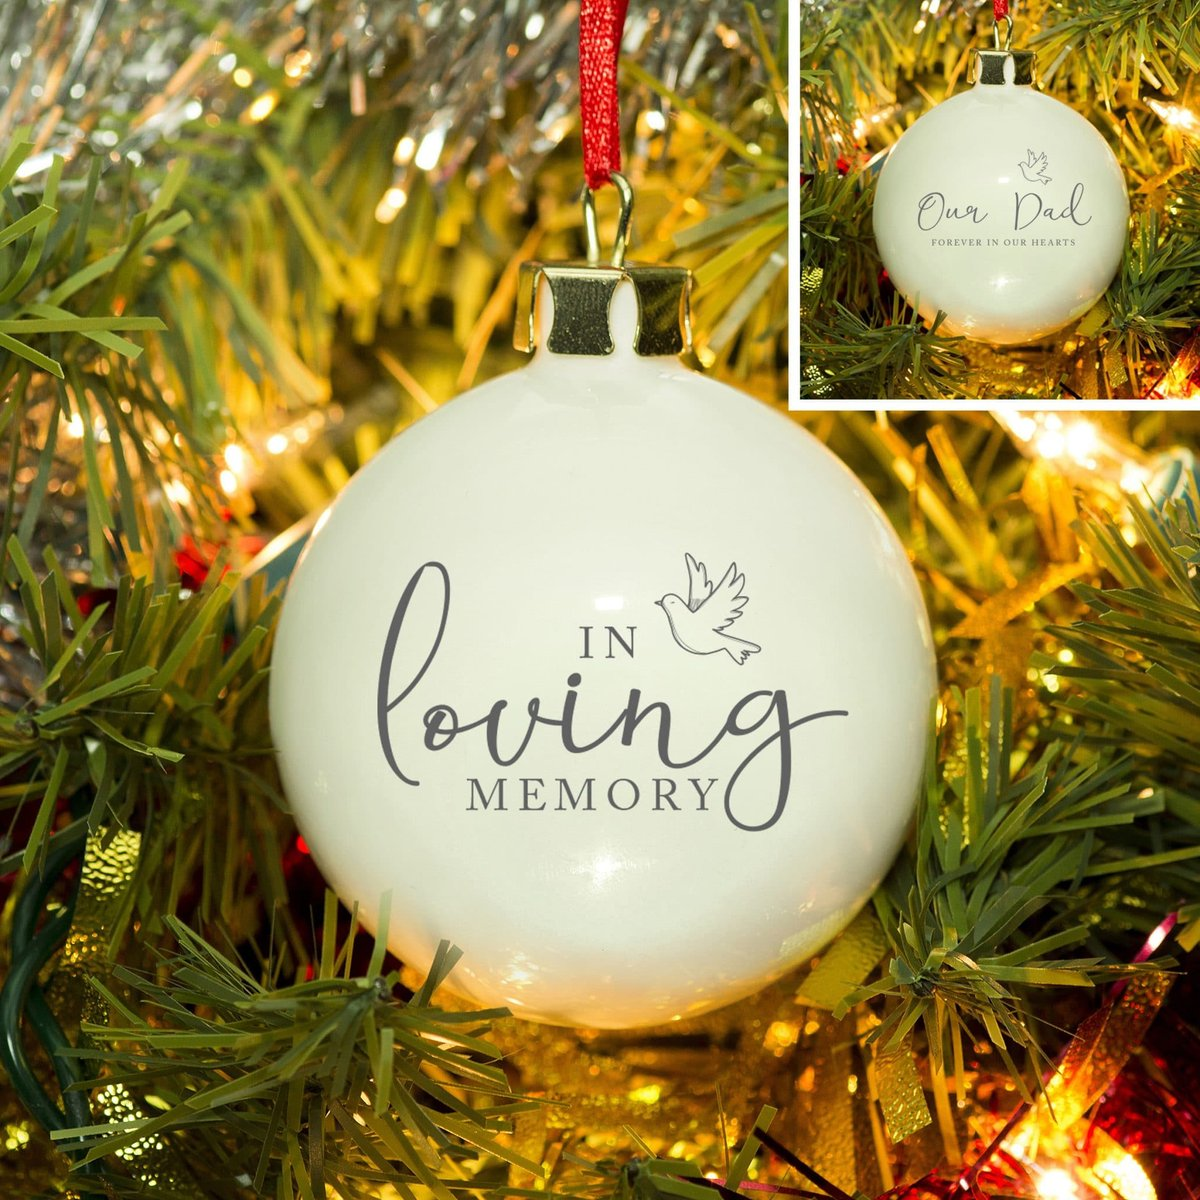 In #Loving #Memory #Personalised #Bauble   The special life of your love one can always be #treasured at #Christmas with this #memorialbauble.  View all our #Memorial #ChristmasBaubles on our website. ⁠ https://t.co/7fF2dsRb8T  https://t.co/PpV8P8doYc